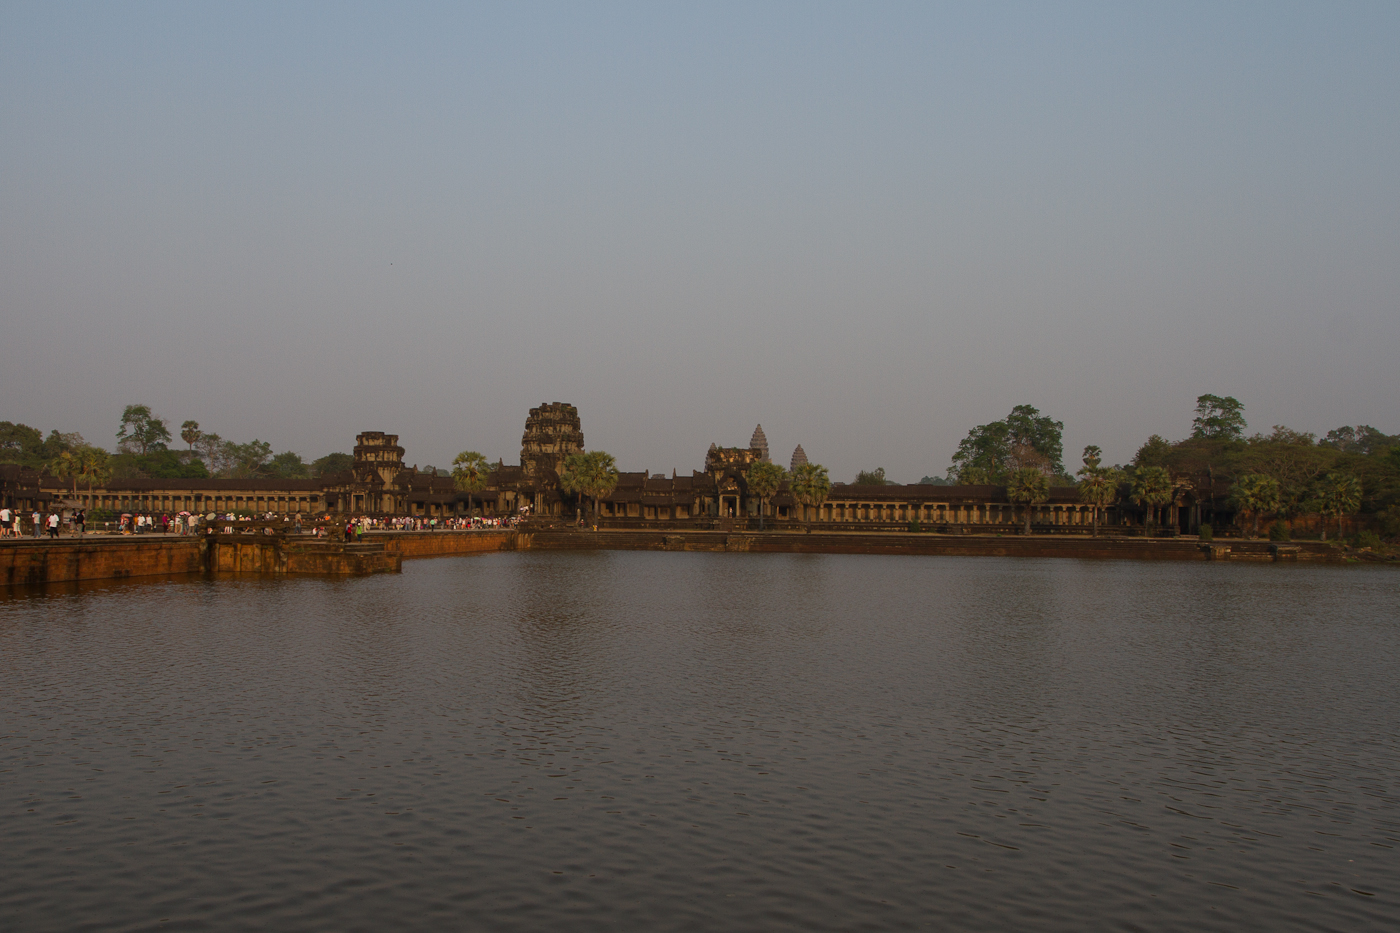 Evening light at Angkor Wat Temple